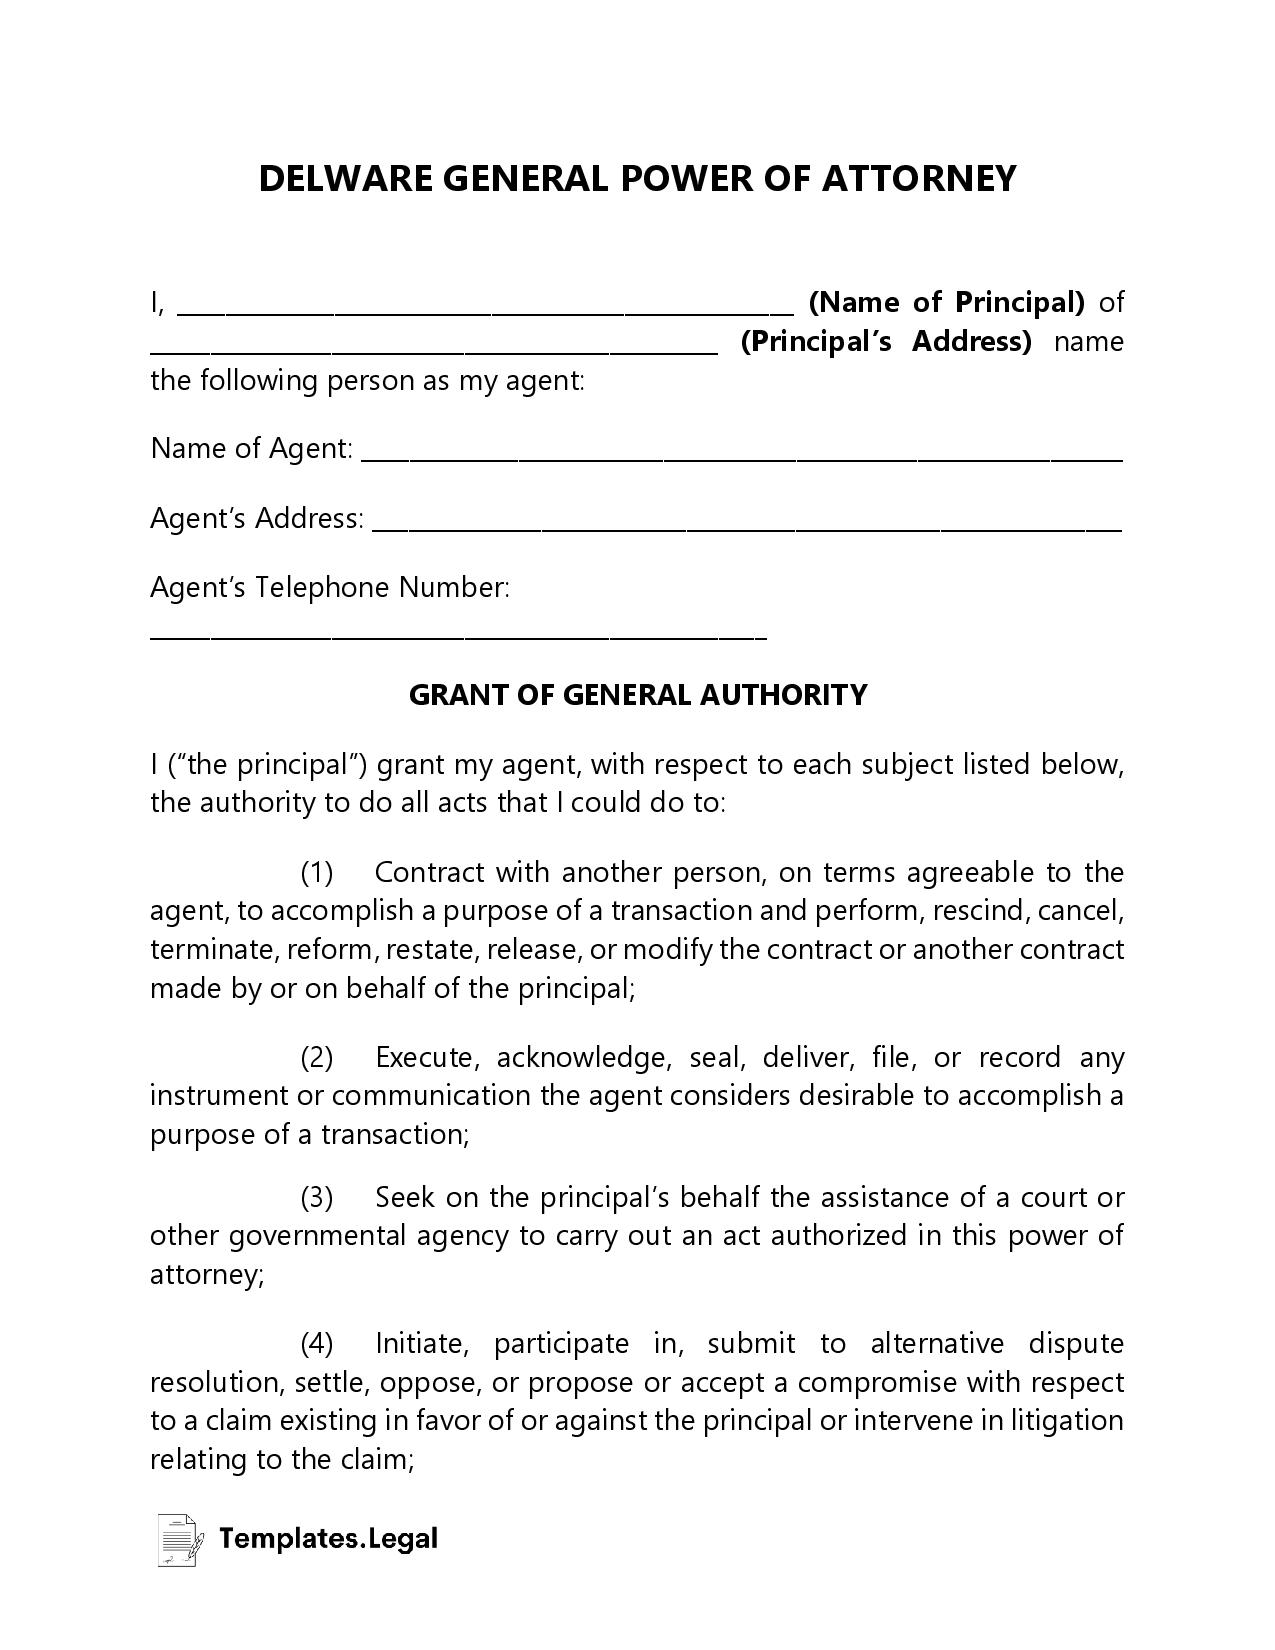 Delaware General Power of Attorney - Templates.Legal